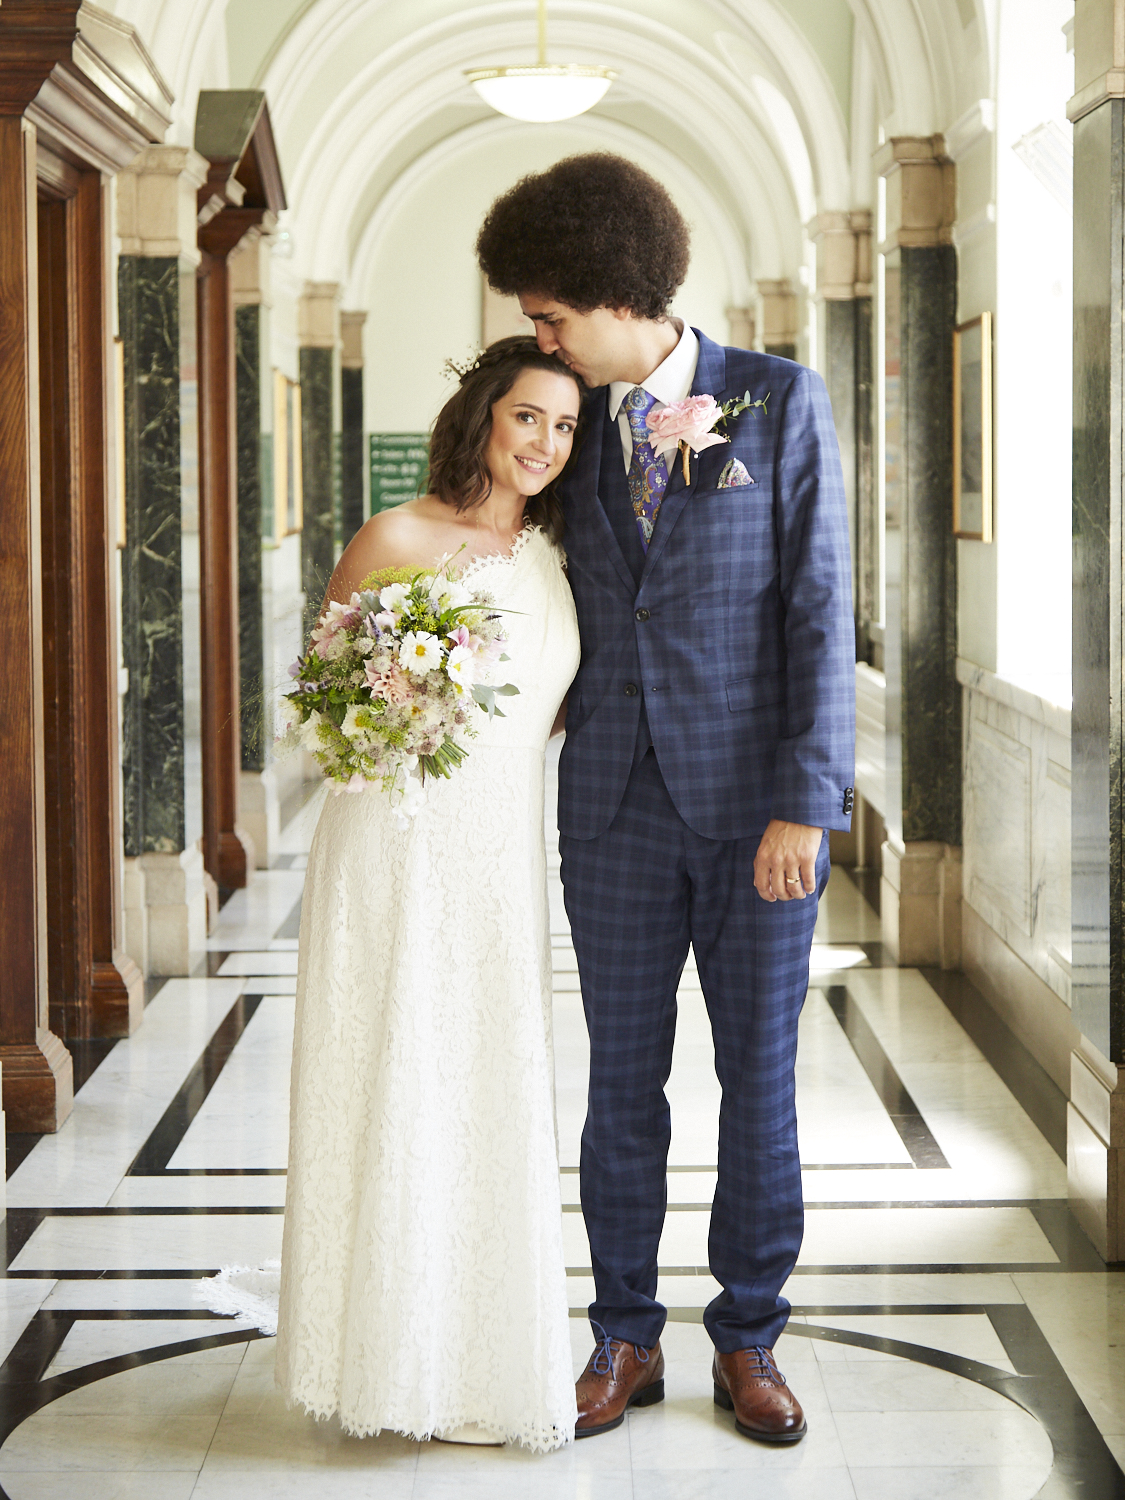 in-love-natural-bride-groom-on-wedding-day-london